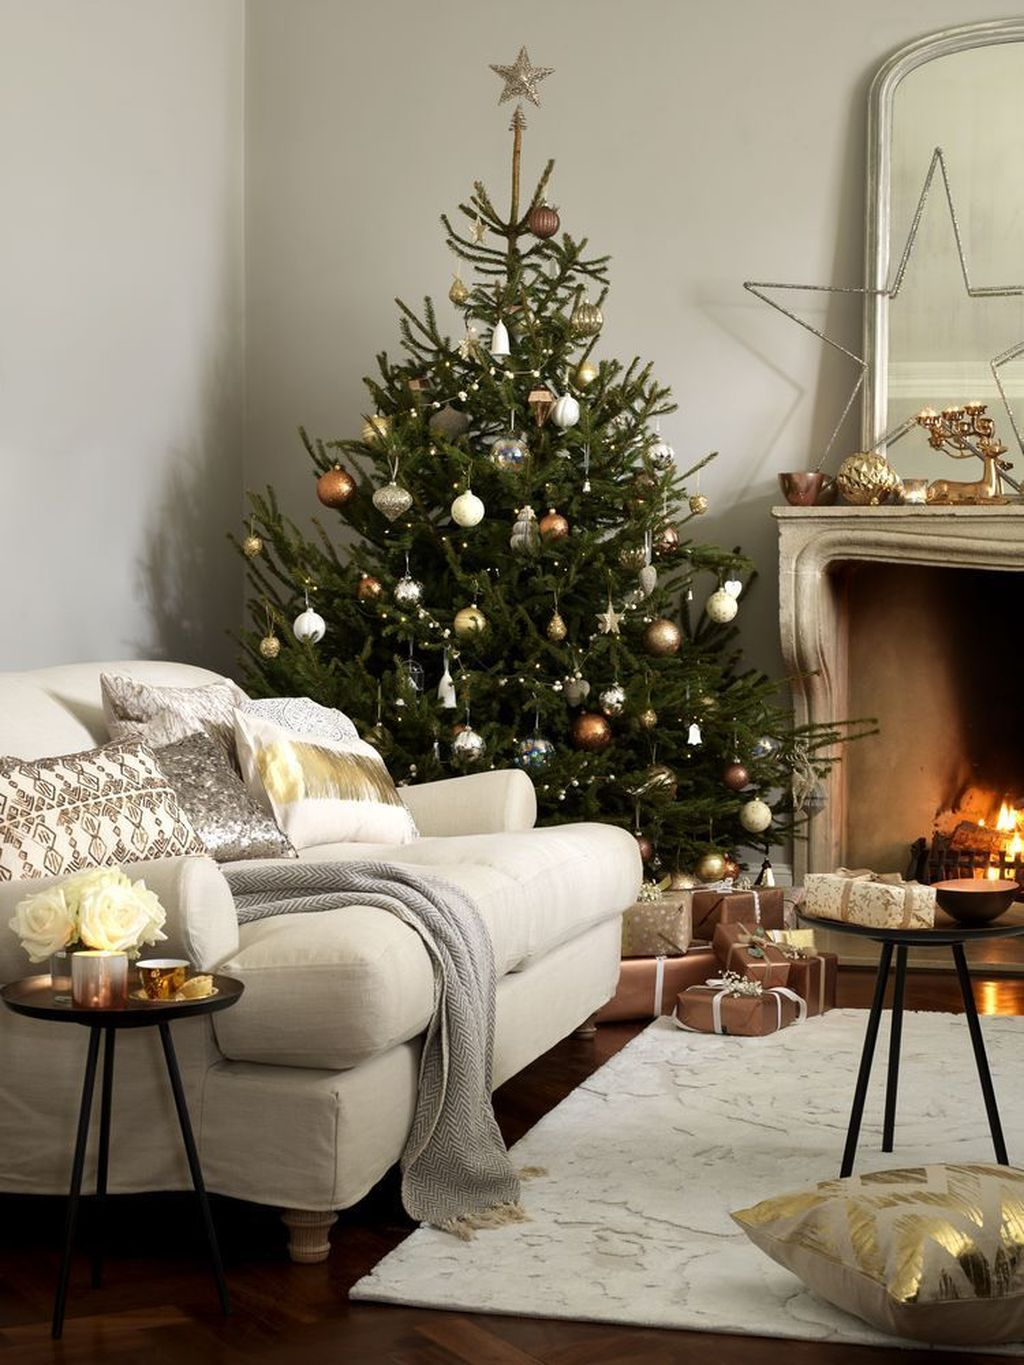 Beautiful Christmas Interior Design Ideas You Never Seen Before 04